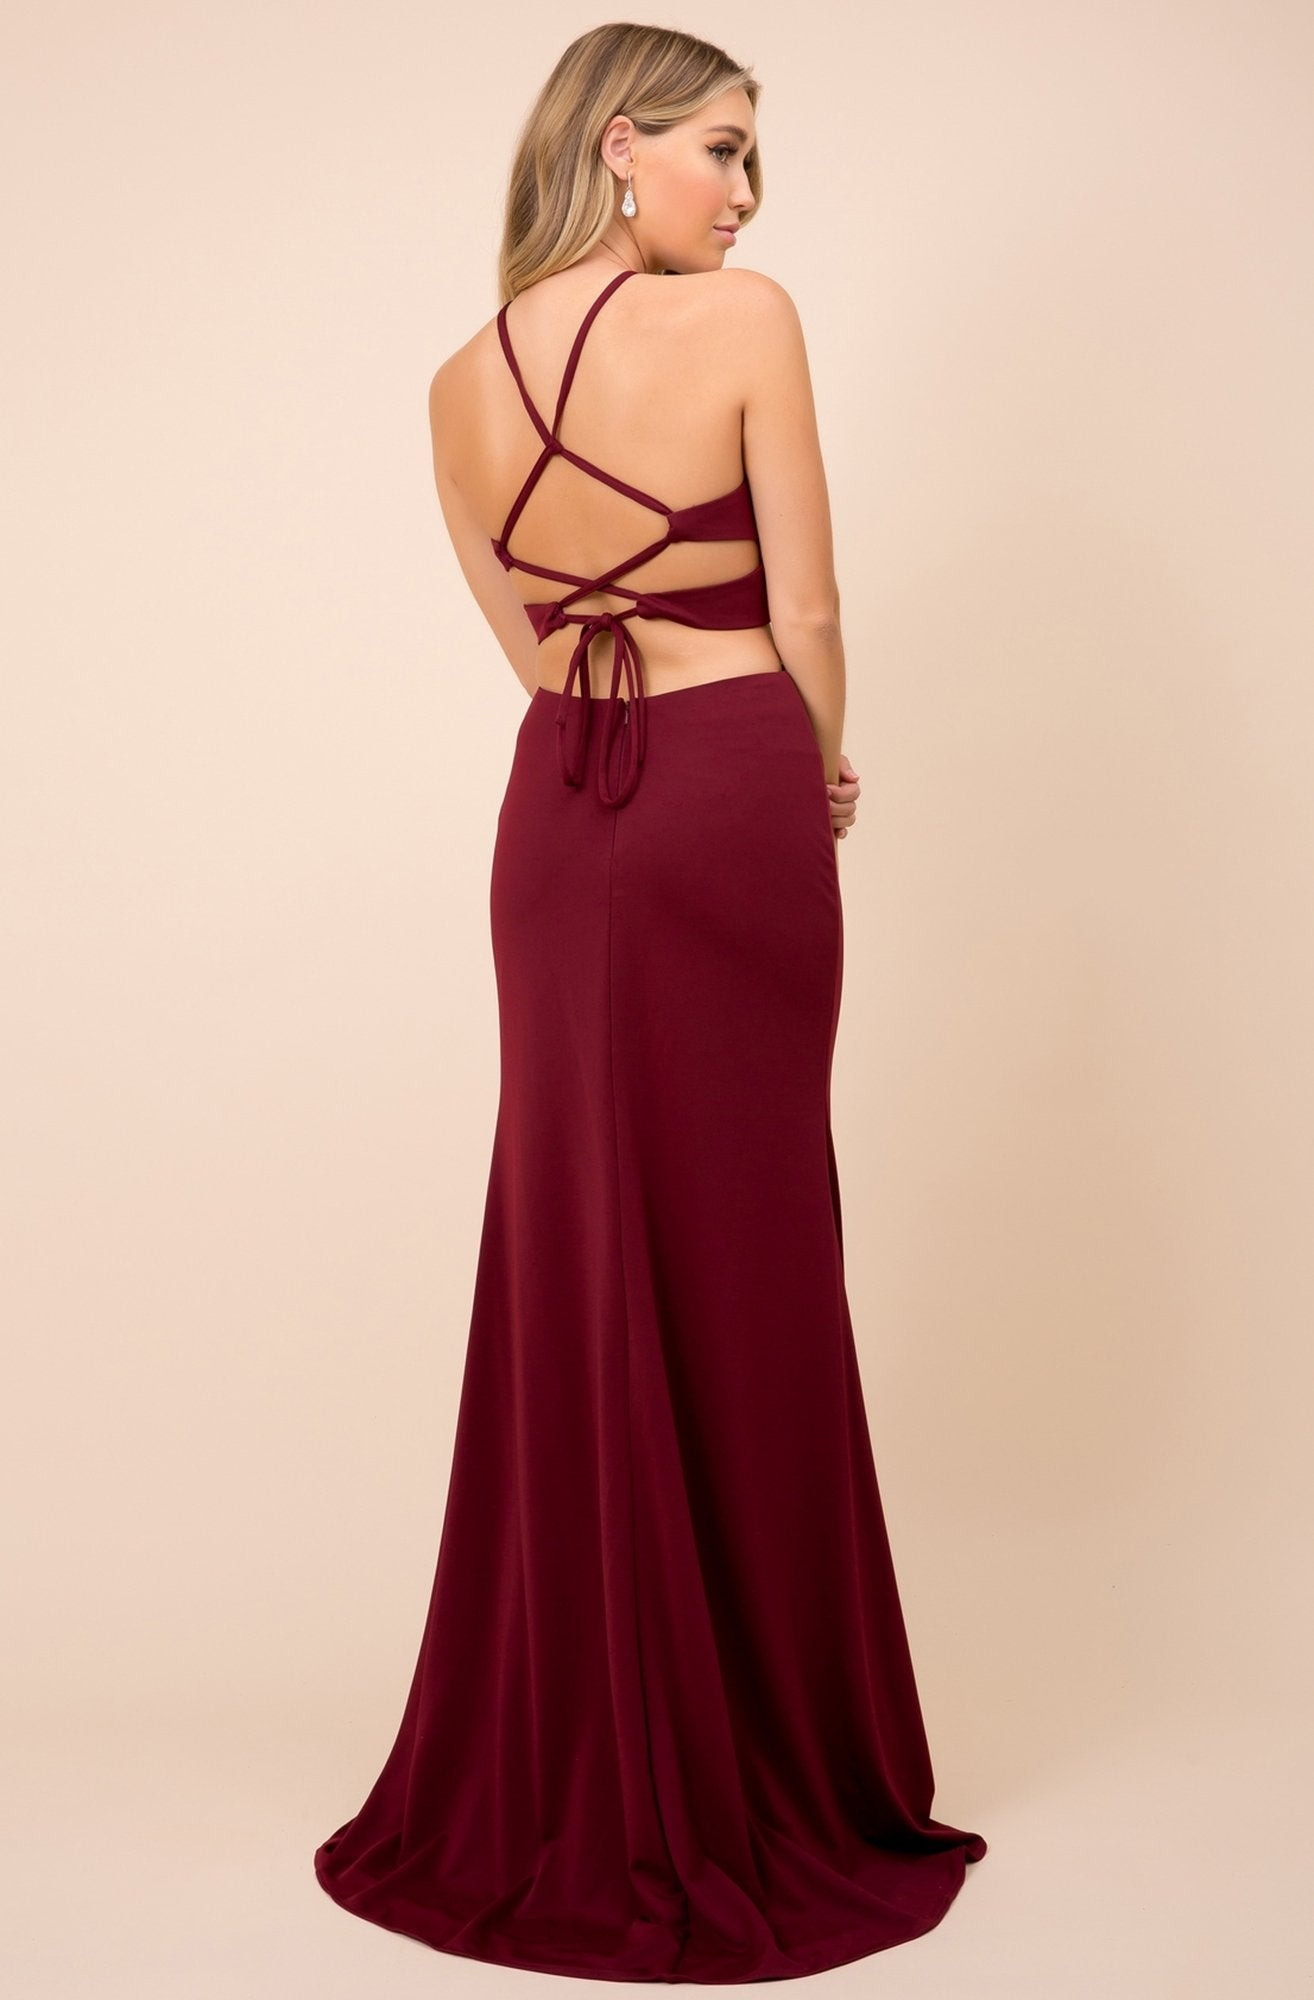 Nox Anabel - C026 Sexy Cutout Halter Neck Lace-up Back Sheath Gown In Red